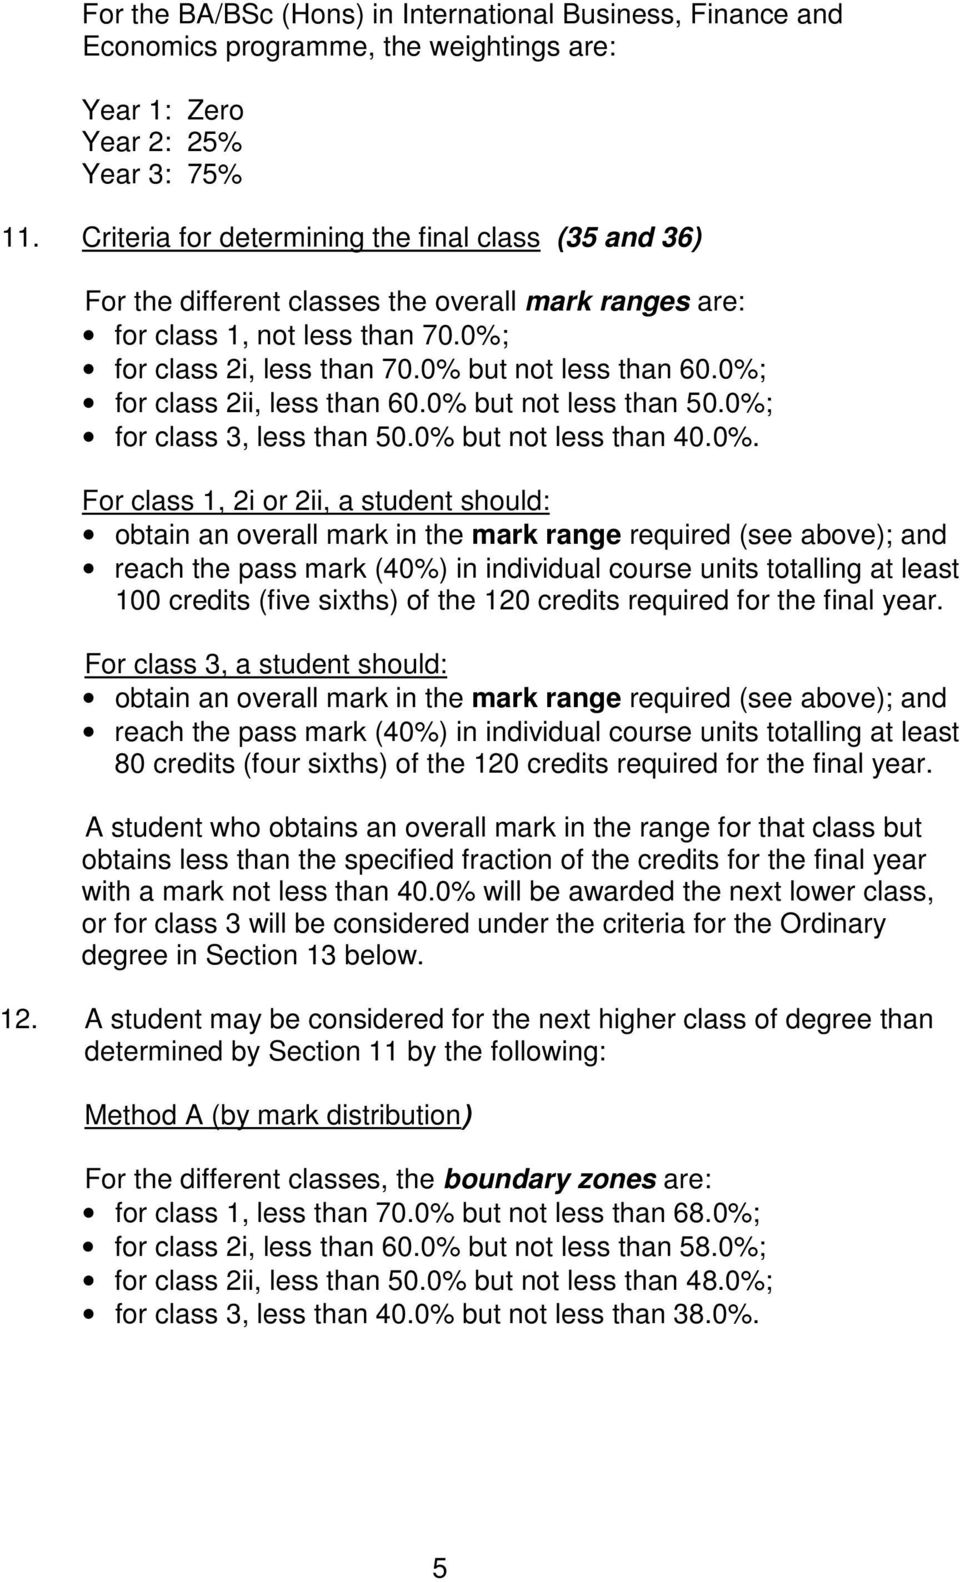 0%; for class 2ii, less than 60.0% but not less than 50.0%; for class 3, less than 50.0% but not less than 40.0%. For class 1, 2i or 2ii, a student should: obtain an overall mark in the mark range required (see above); and 100 credits (five sixths) of the 120 credits required for the final year.